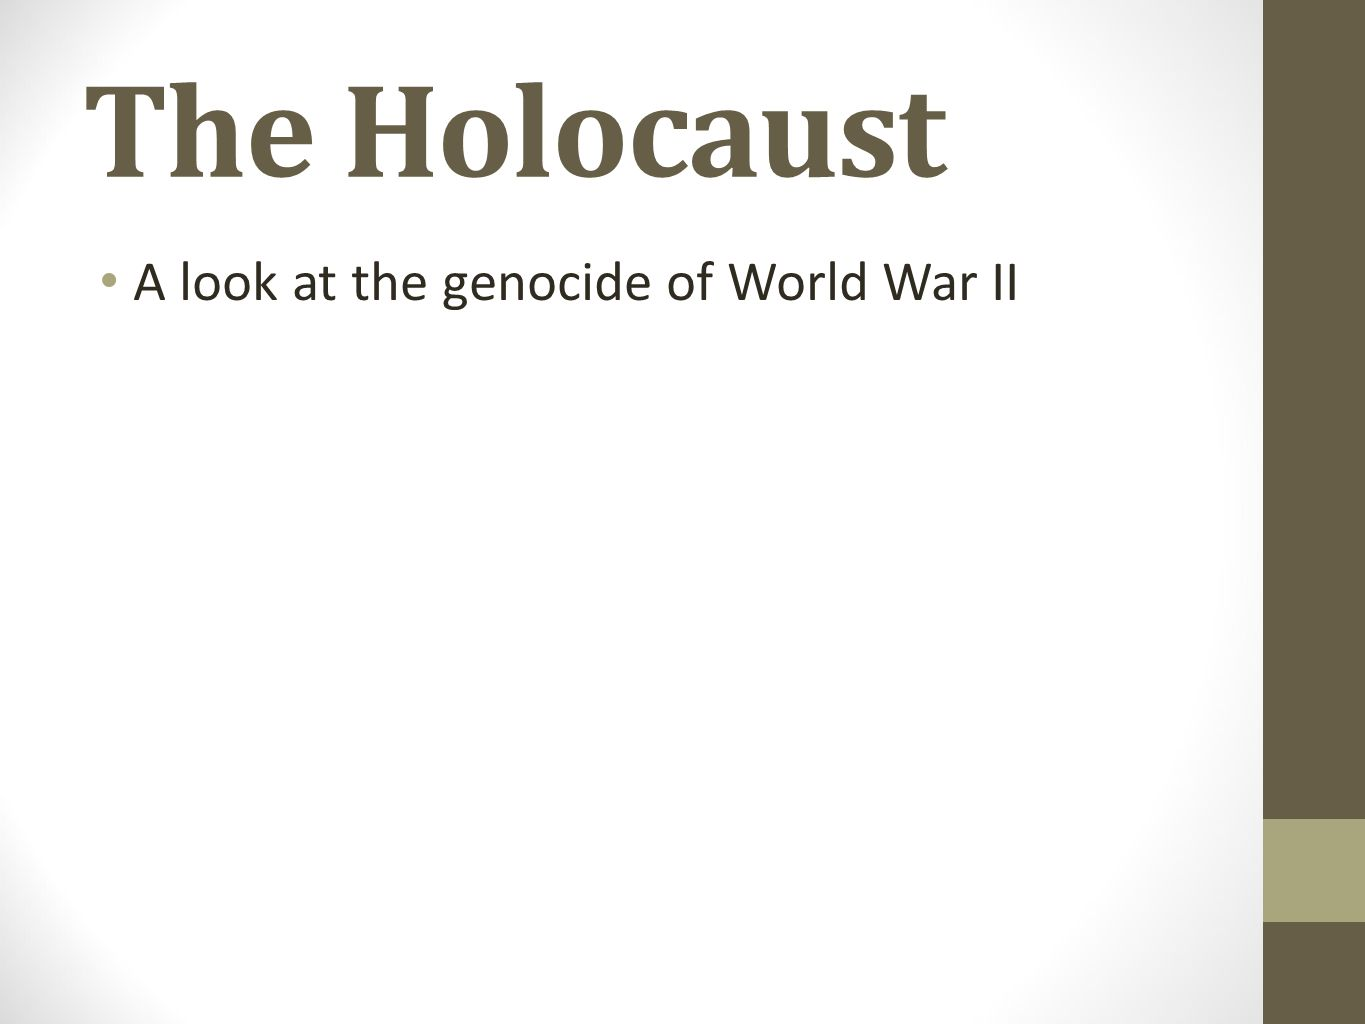 5 words that describe holocaust There are many words to describe the holocaust some words are: horrible- jews were murdered one after the other killing- nazis killed jews it is incorrect to use the word holocaust to describe a period of time and also confusing in the context of world war 2 the word refers to the nazi genocide.